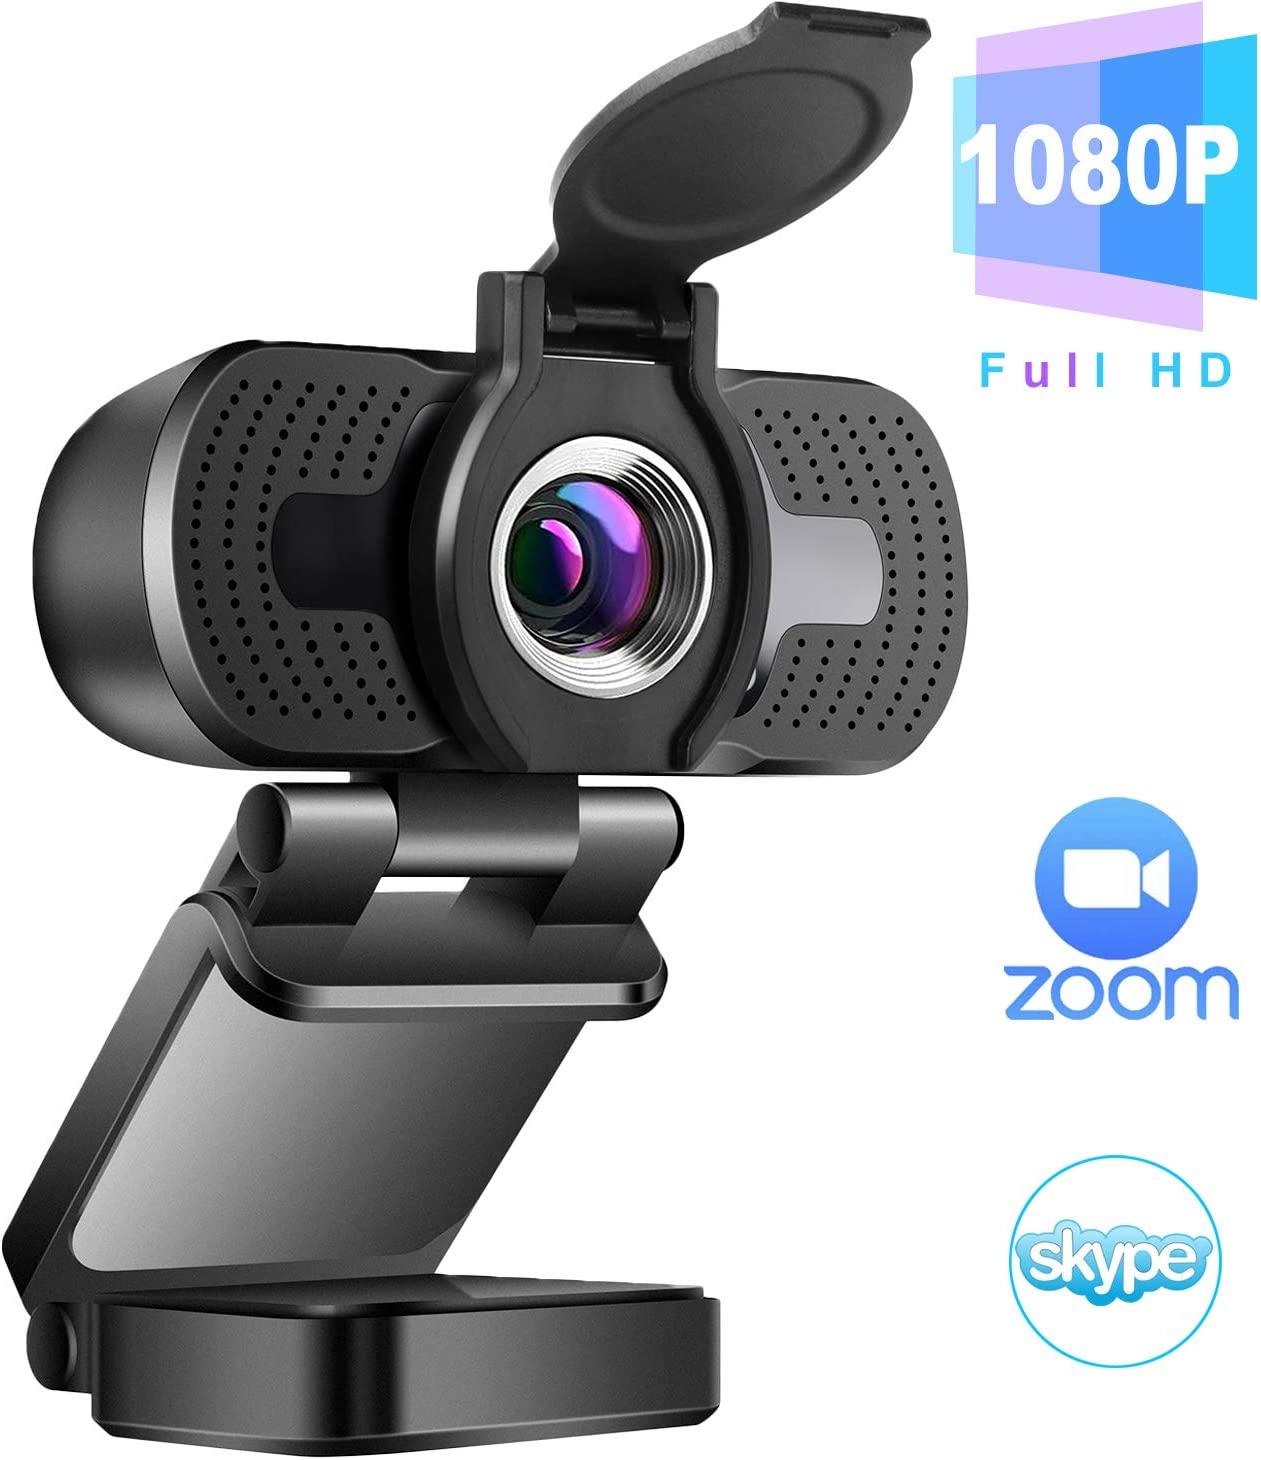 Amazon.com: 1080P Webcam with Microphone & Privacy Cover, ZILINK Web Cam  USB Camera for PC Laptop, Desktop Computer HD Streaming Webcam for Zoom  YouTube Skype, Wide Angle, Auto Light Correction, Windows Mac